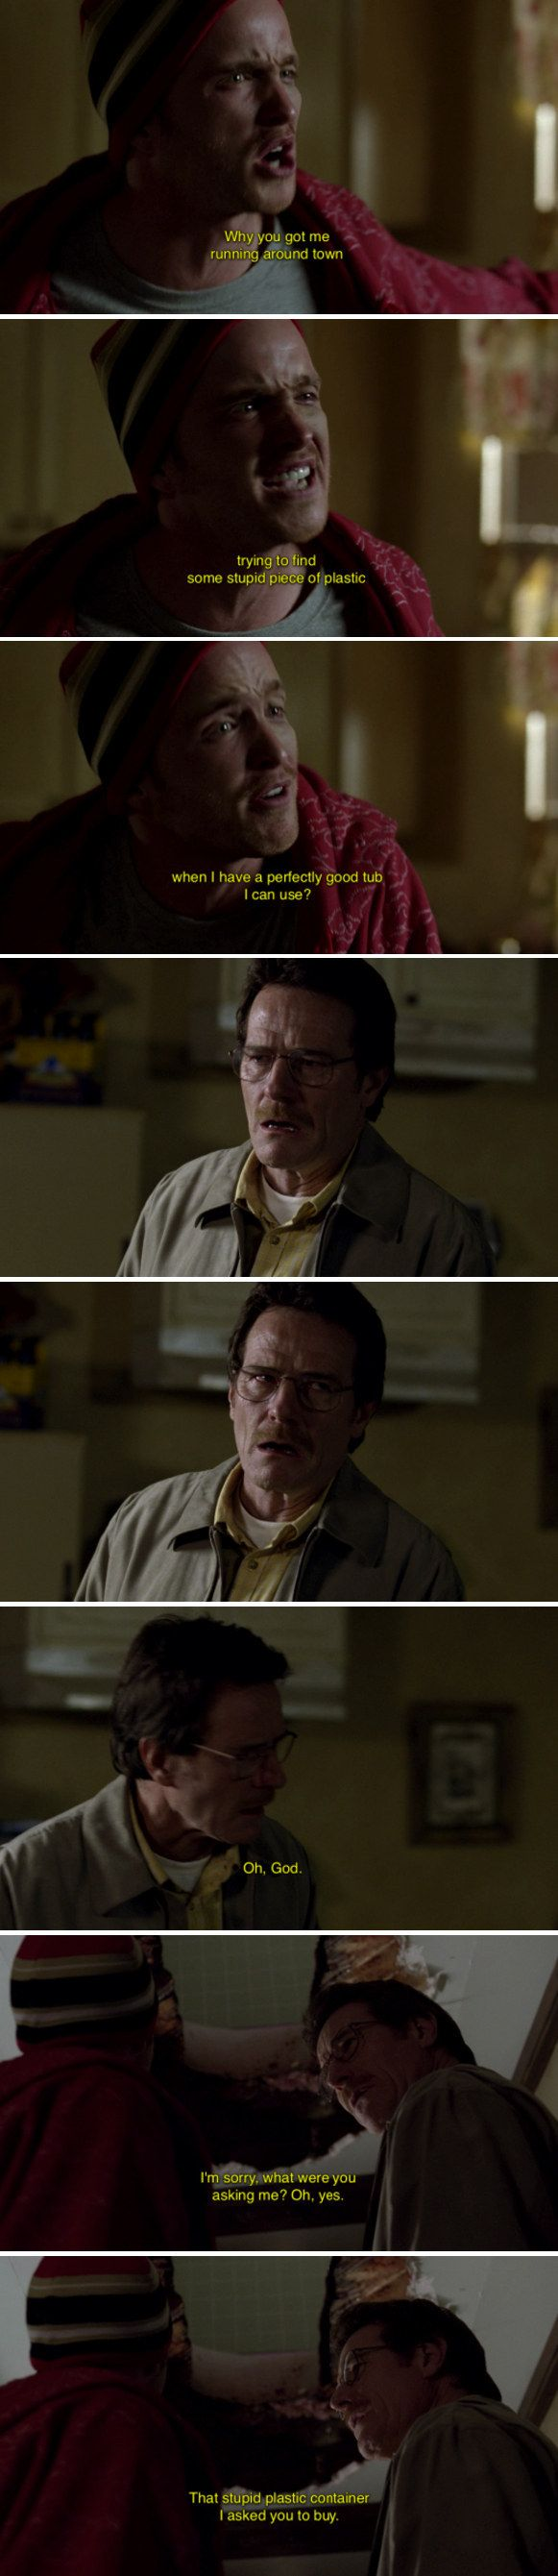 """When Walt had arguably the greatest (and messiest) """"I told you so"""" moment of all time. 